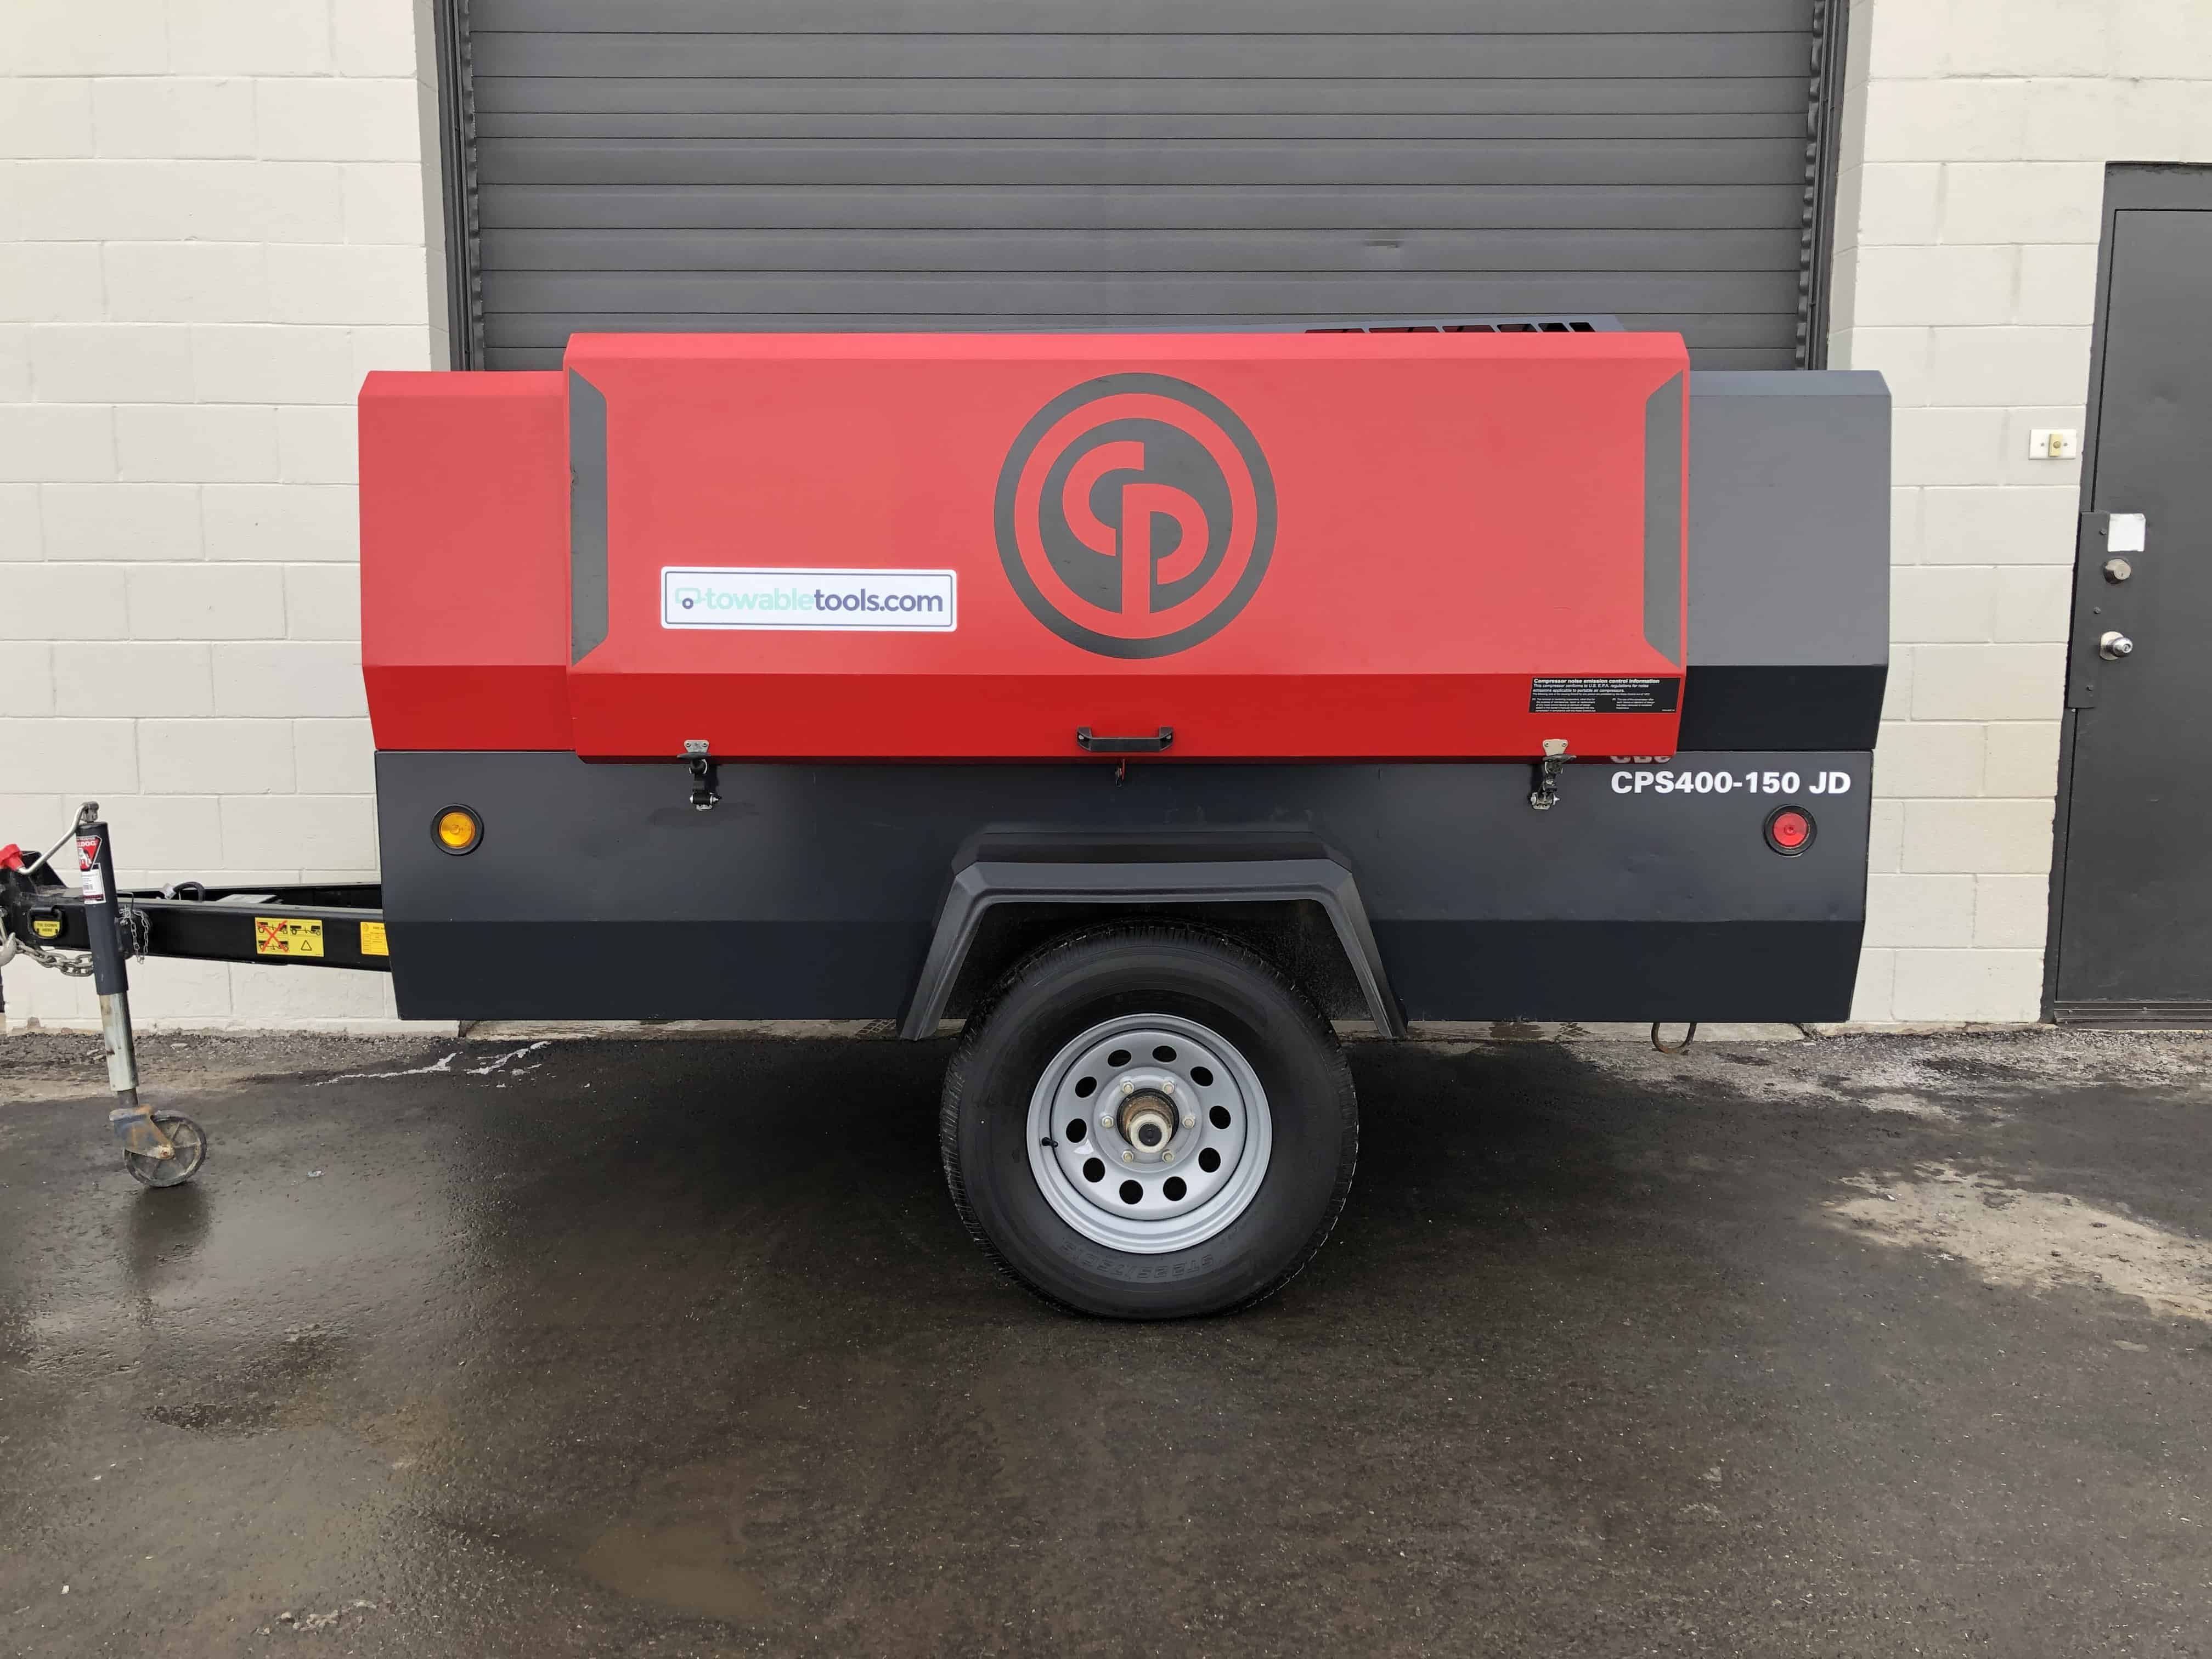 Chicago Pneumatic Compressor For Sale - 400 cfm Diesel portable at Towable Tools